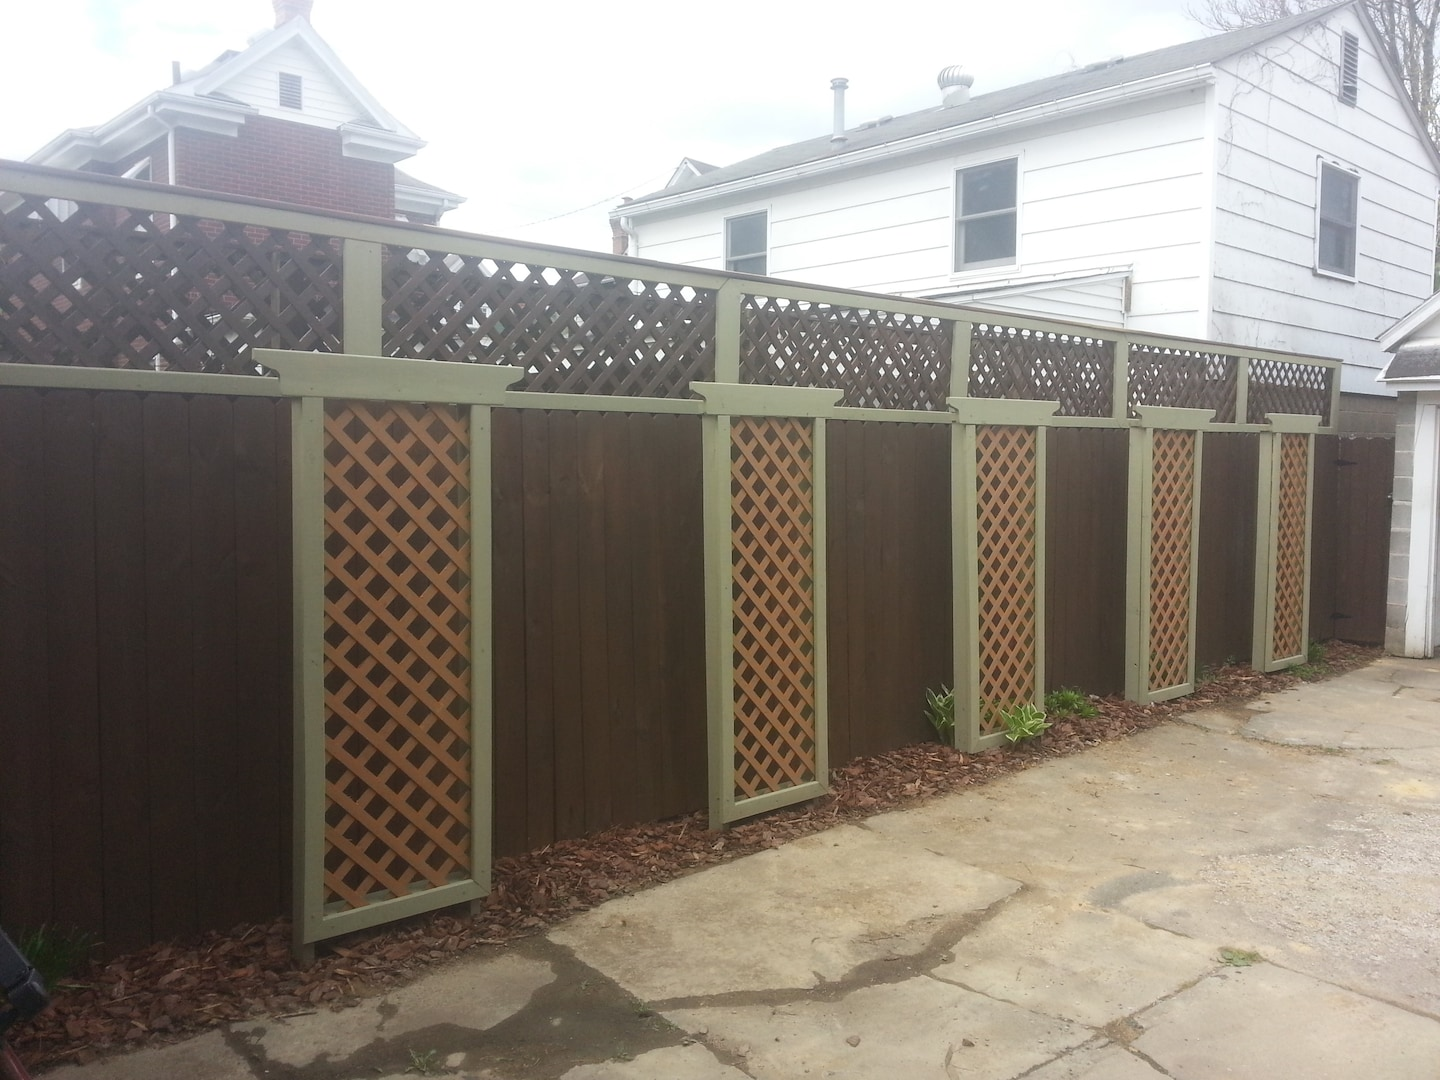 R and B Fencing & Beautiful Home Services